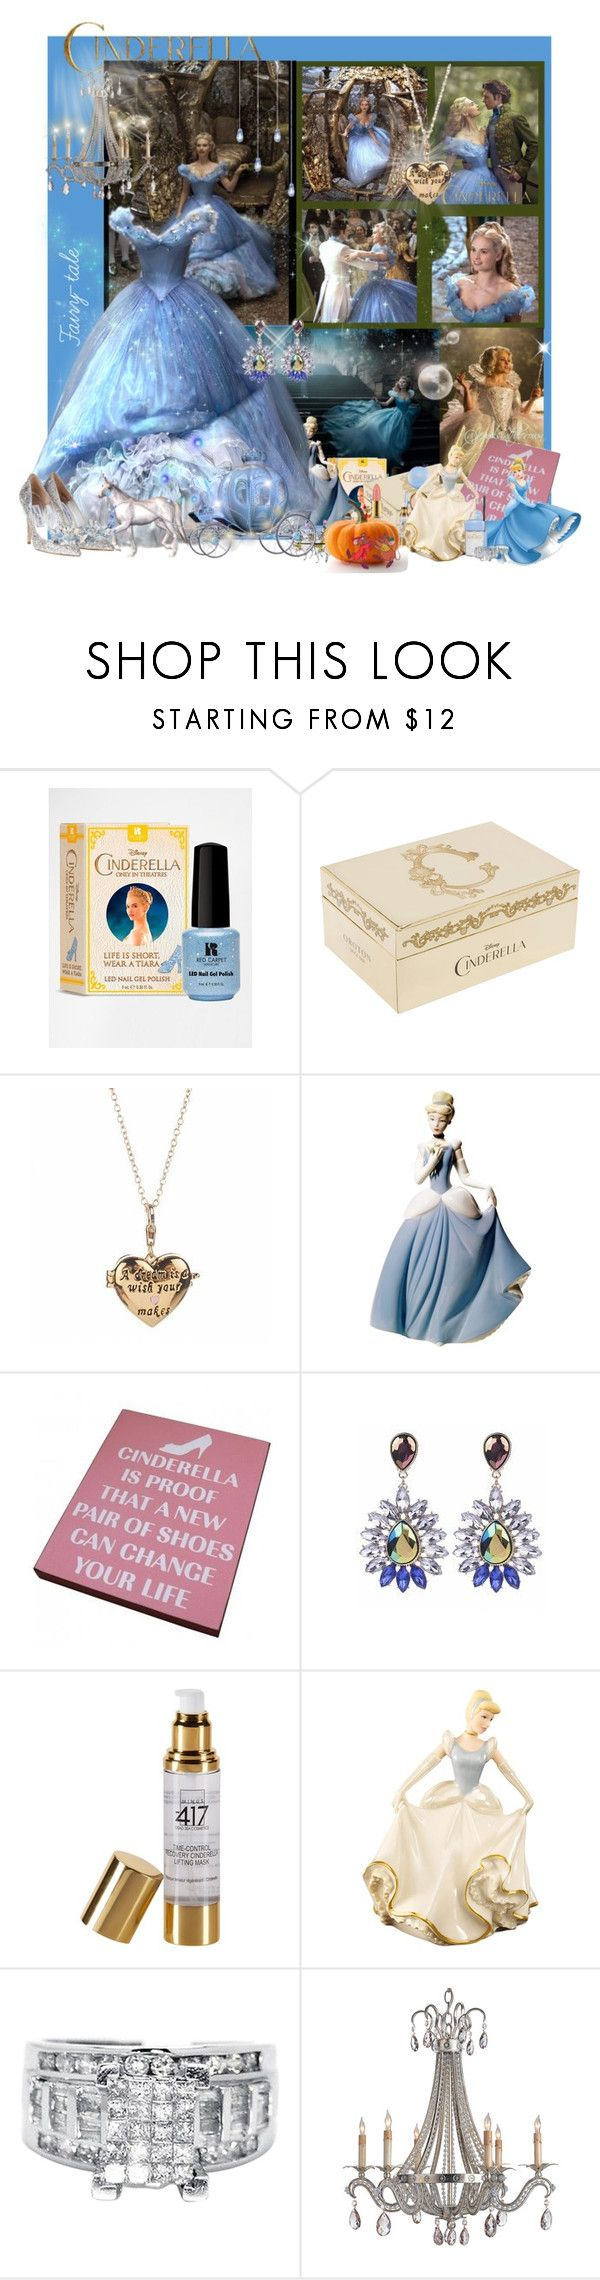 """Cinderella a Fairy-tale!"" by jewelsinthecrown ❤ liked on Polyvore featuring Disney, Red Carpet Manicure, Oroton, Disney Couture, Nao, Minus 417, Lenox and M.A.C"